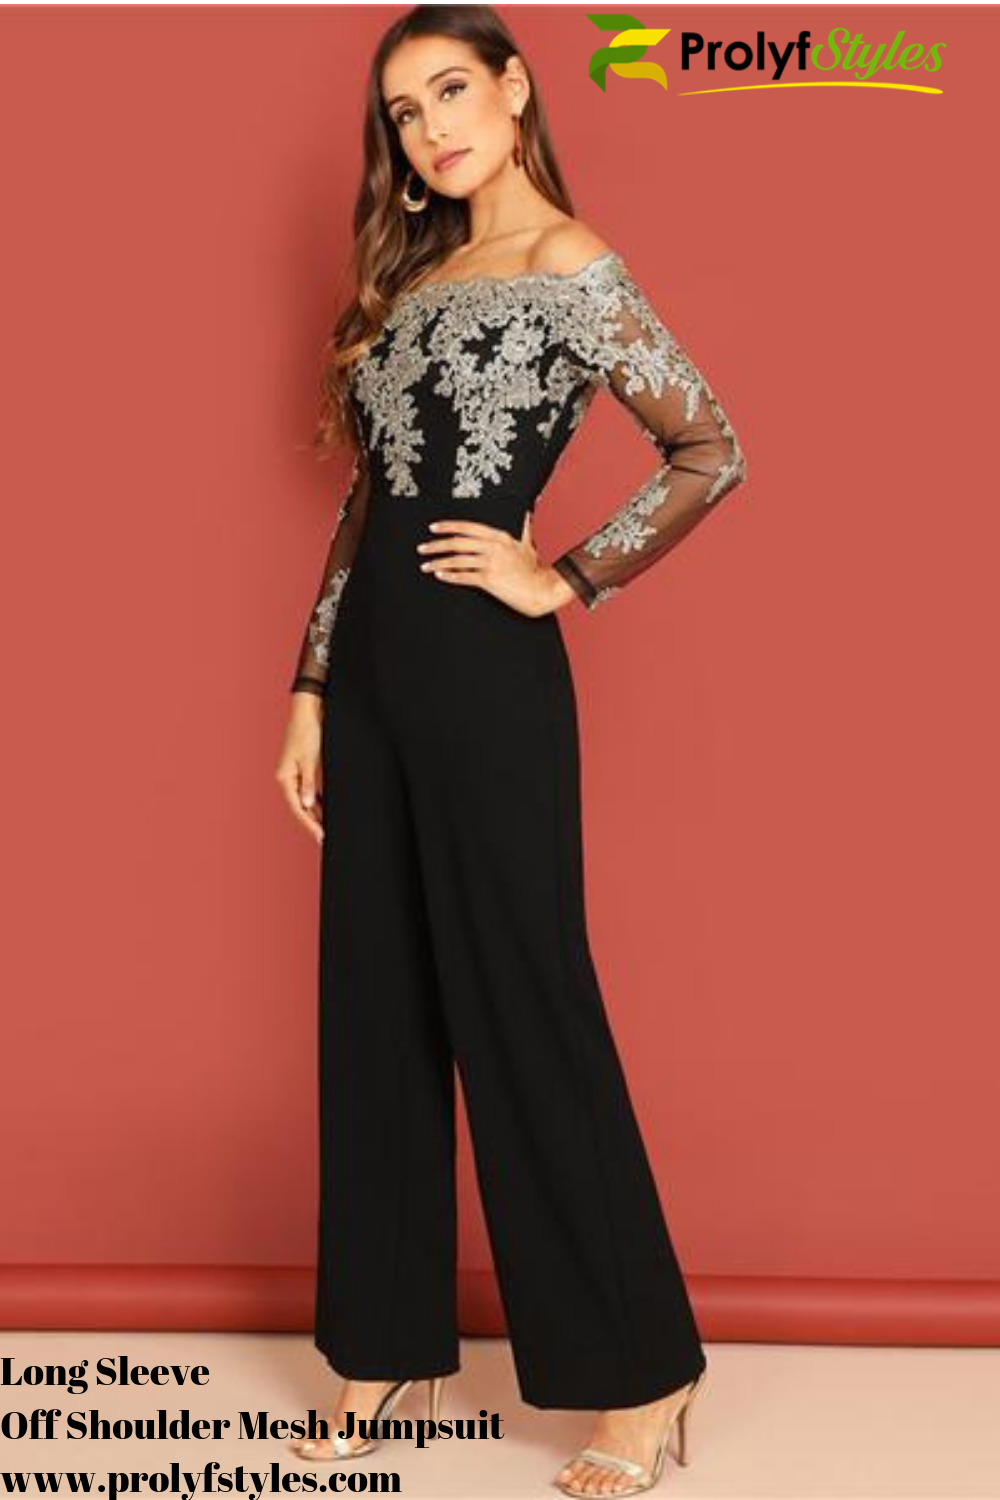 c71177bd37e43 You'll be the sight of pure elegance in this Long sleeve jumpsuit classy.  Long sleeve jumpsuit wide legs, wide leg jumpsuit formal.